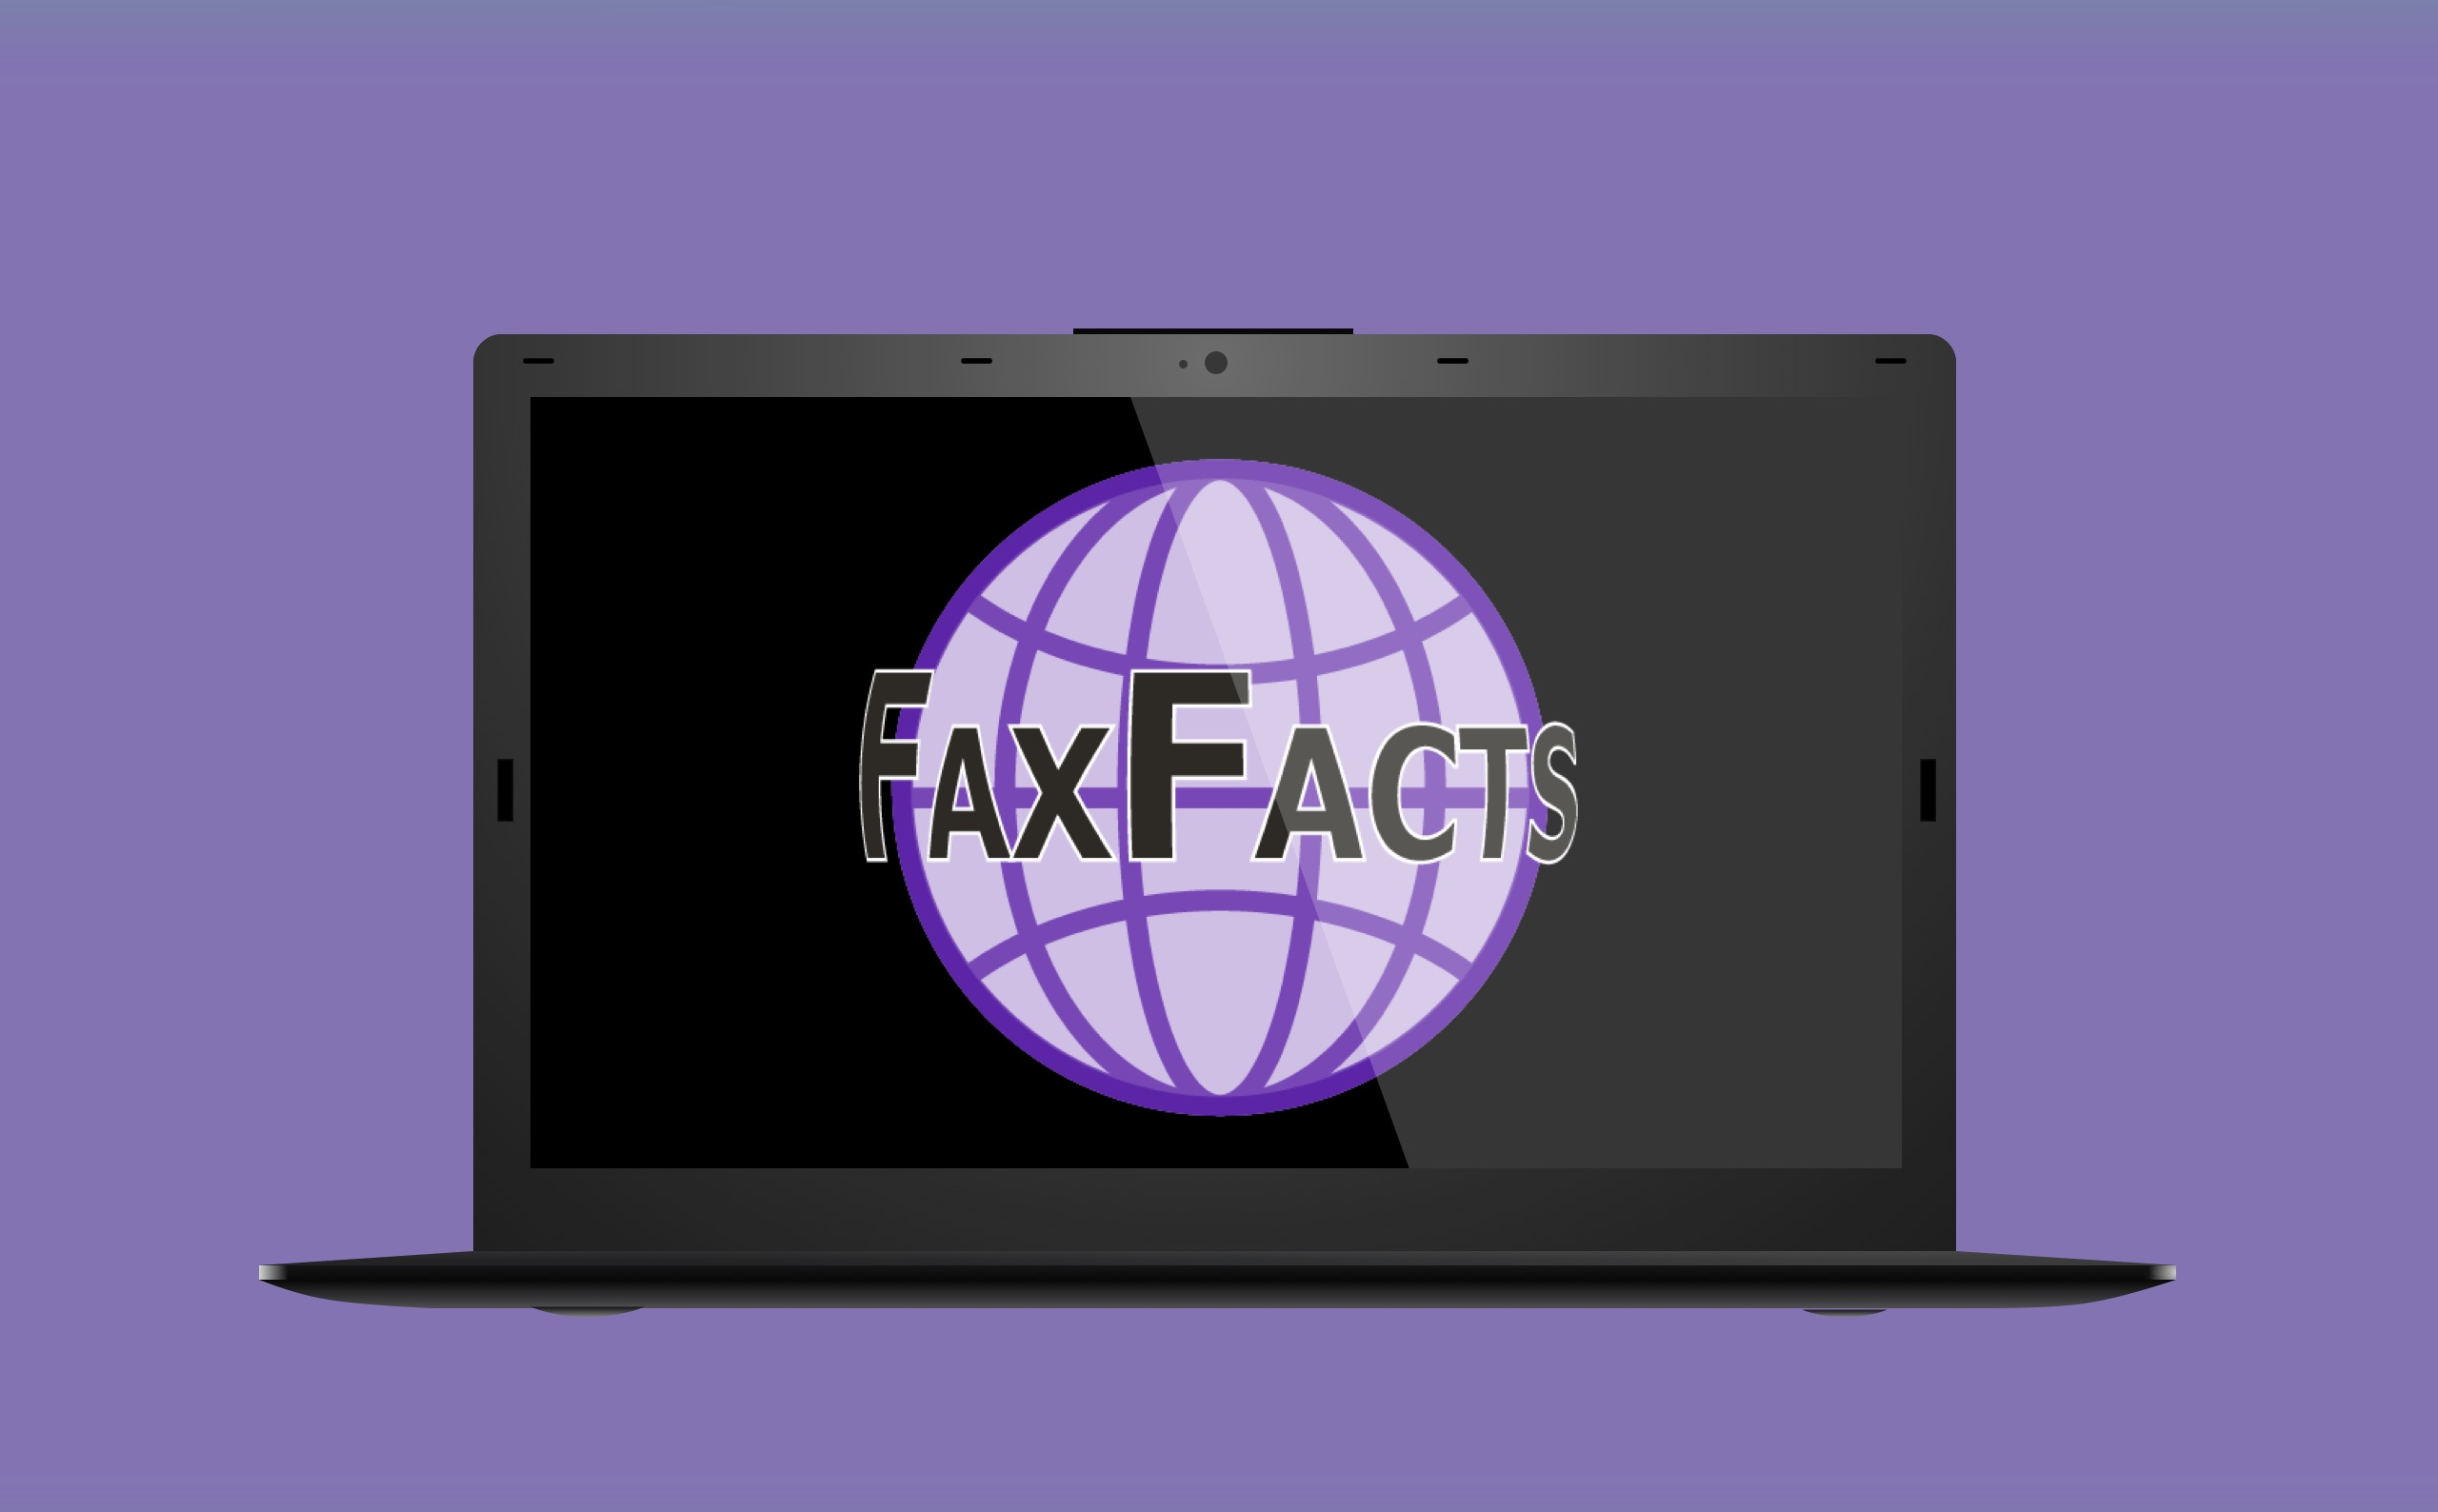 FaxFacts Fax Server